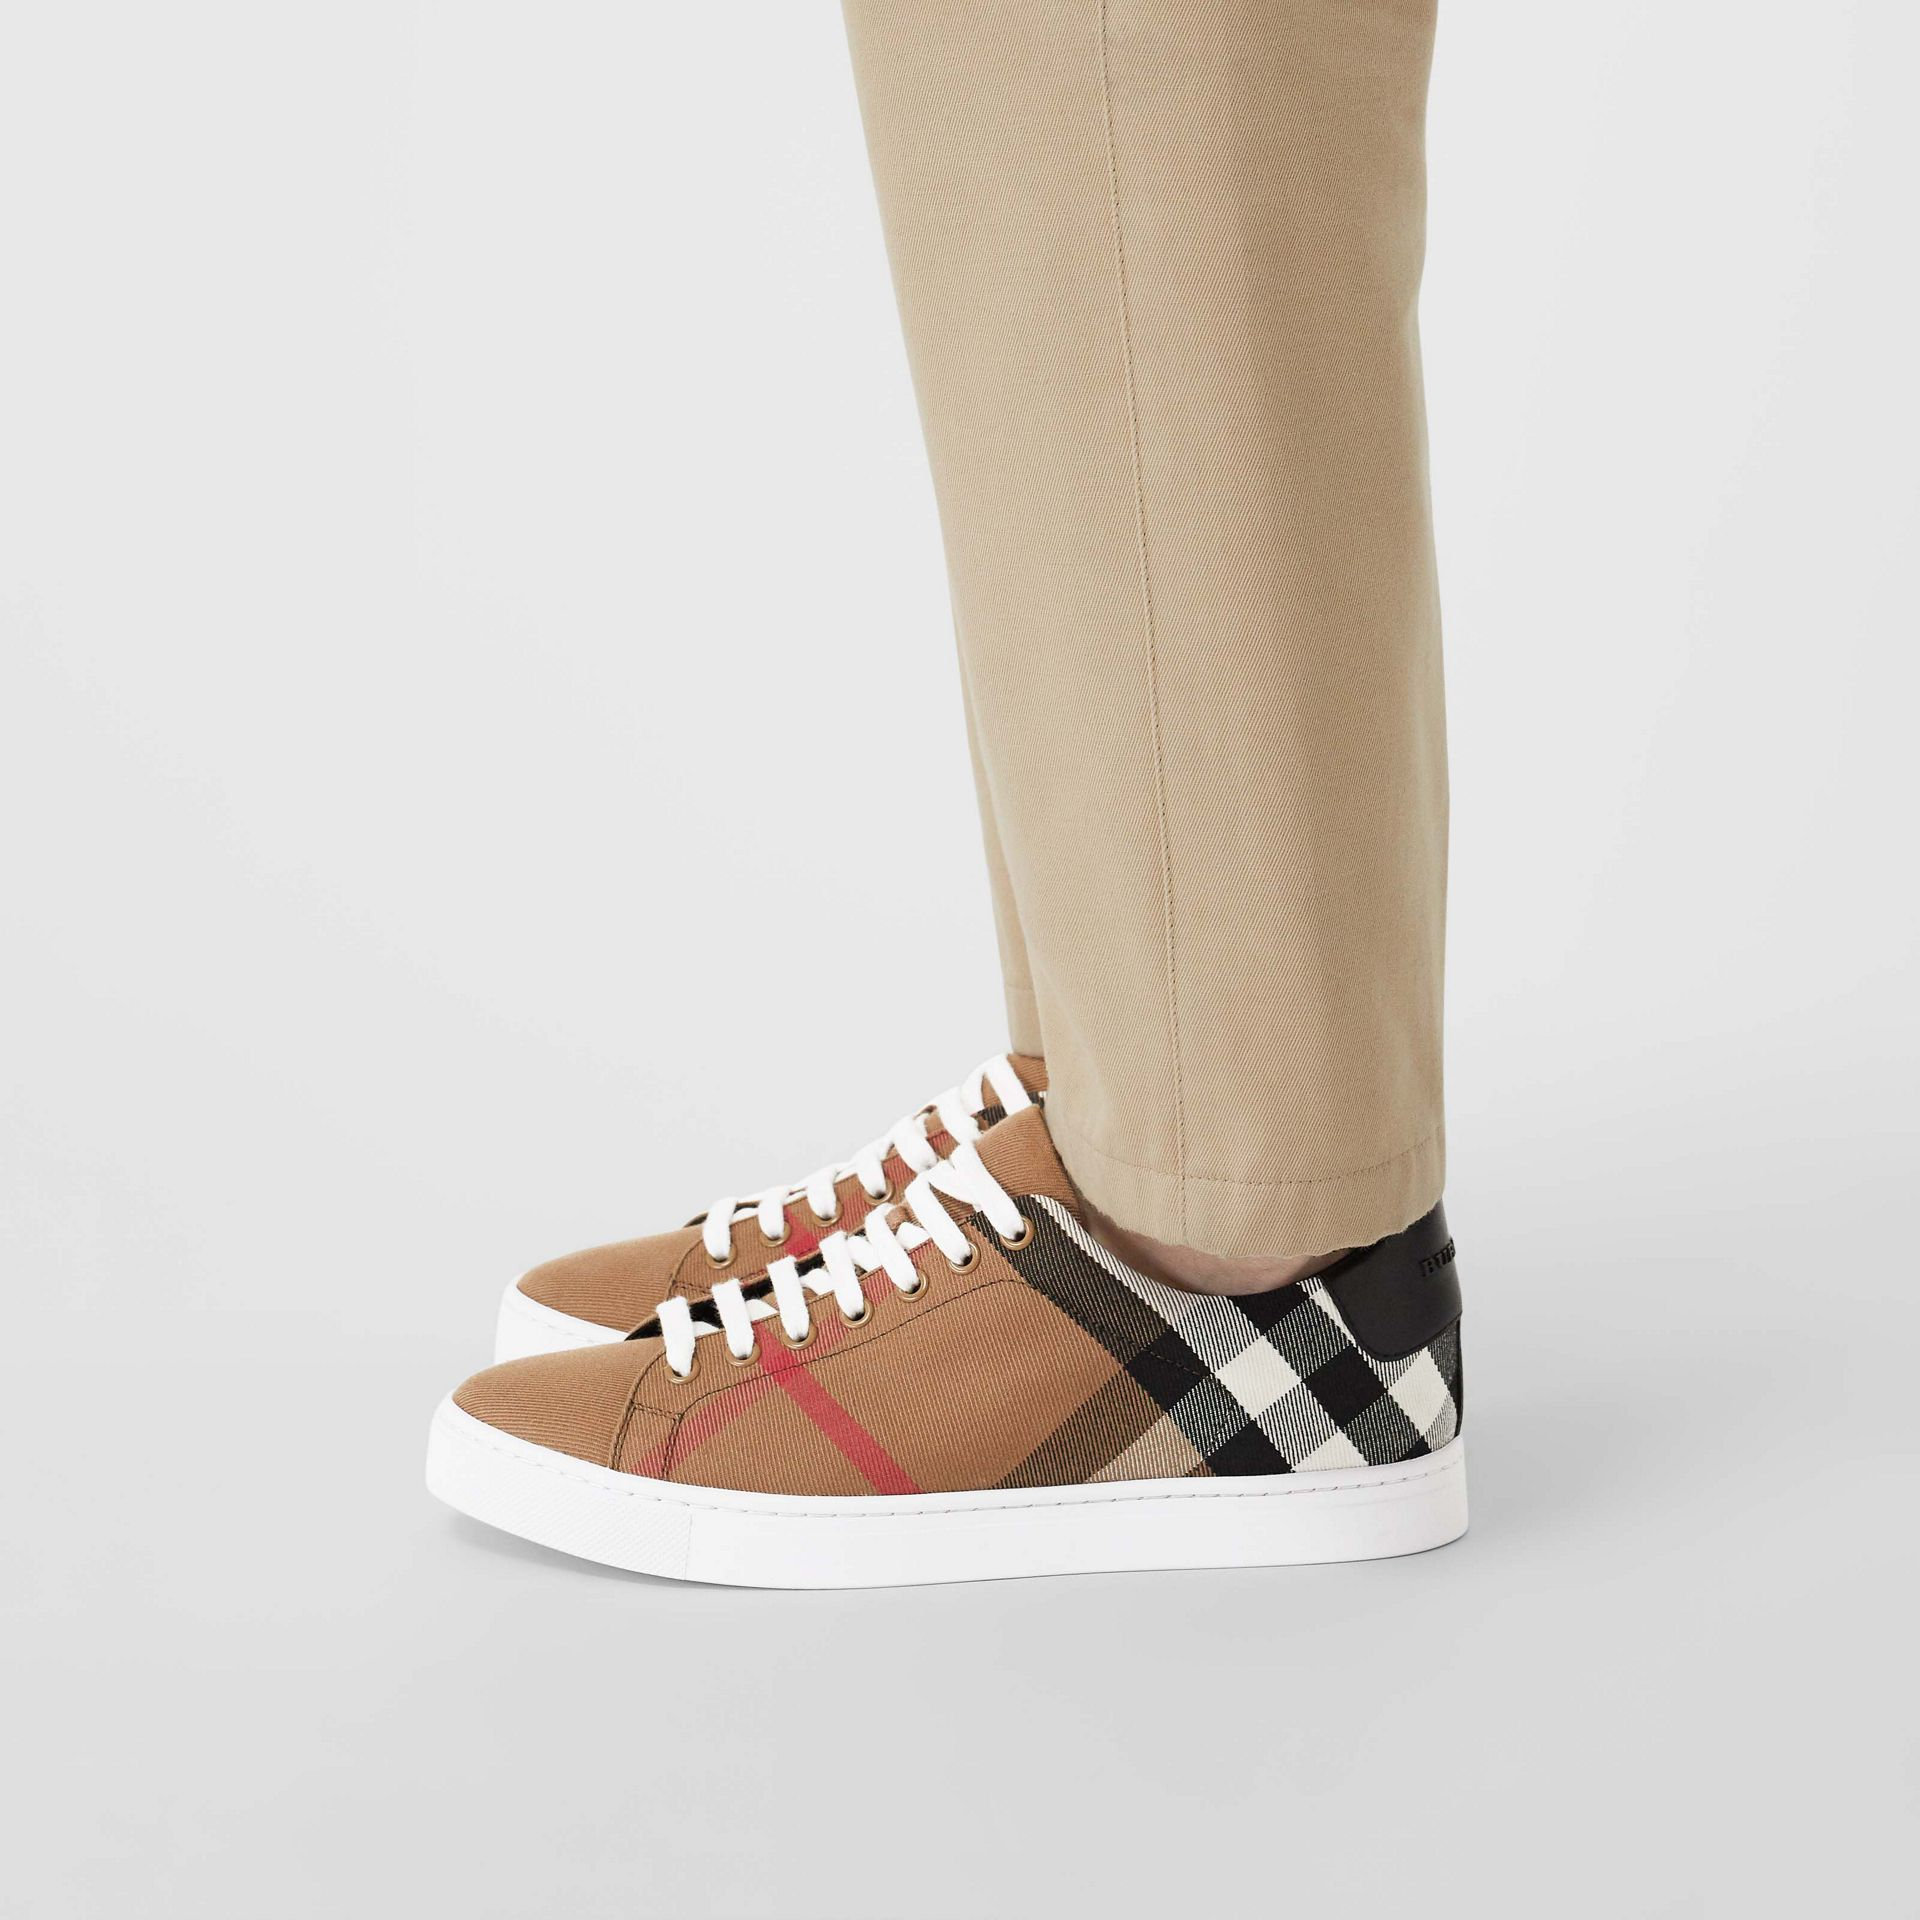 House Check and Leather Sneakers in Check/black - Men | Burberry - gallery image 2